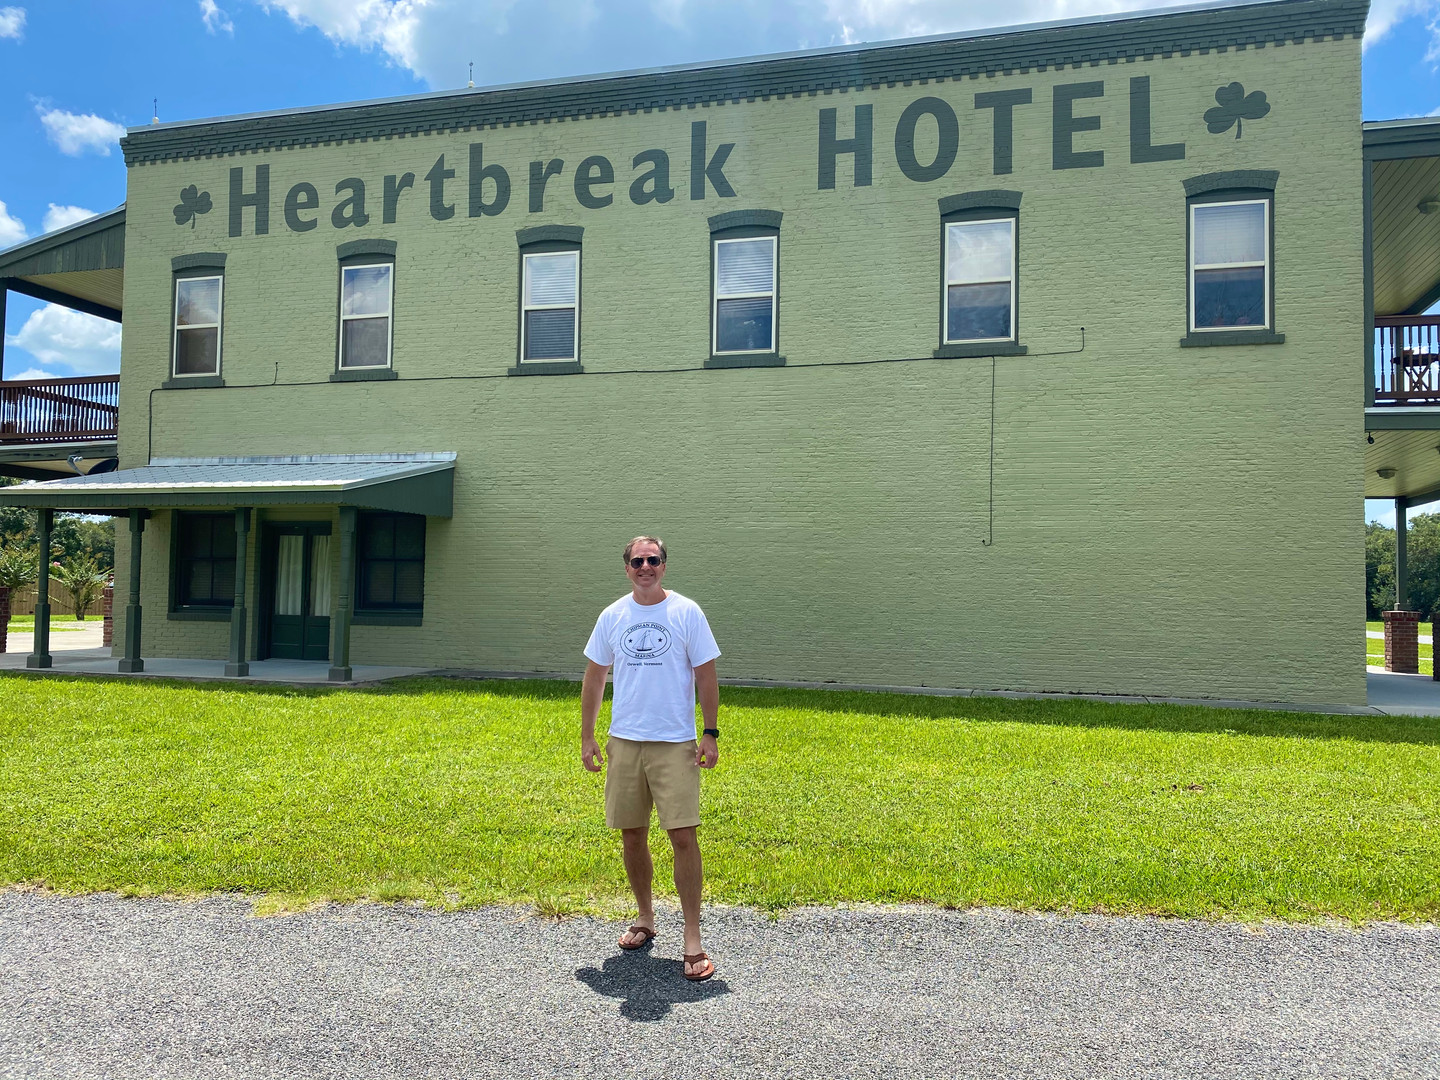 Heartbreak Hotel in Kenansville, Florida